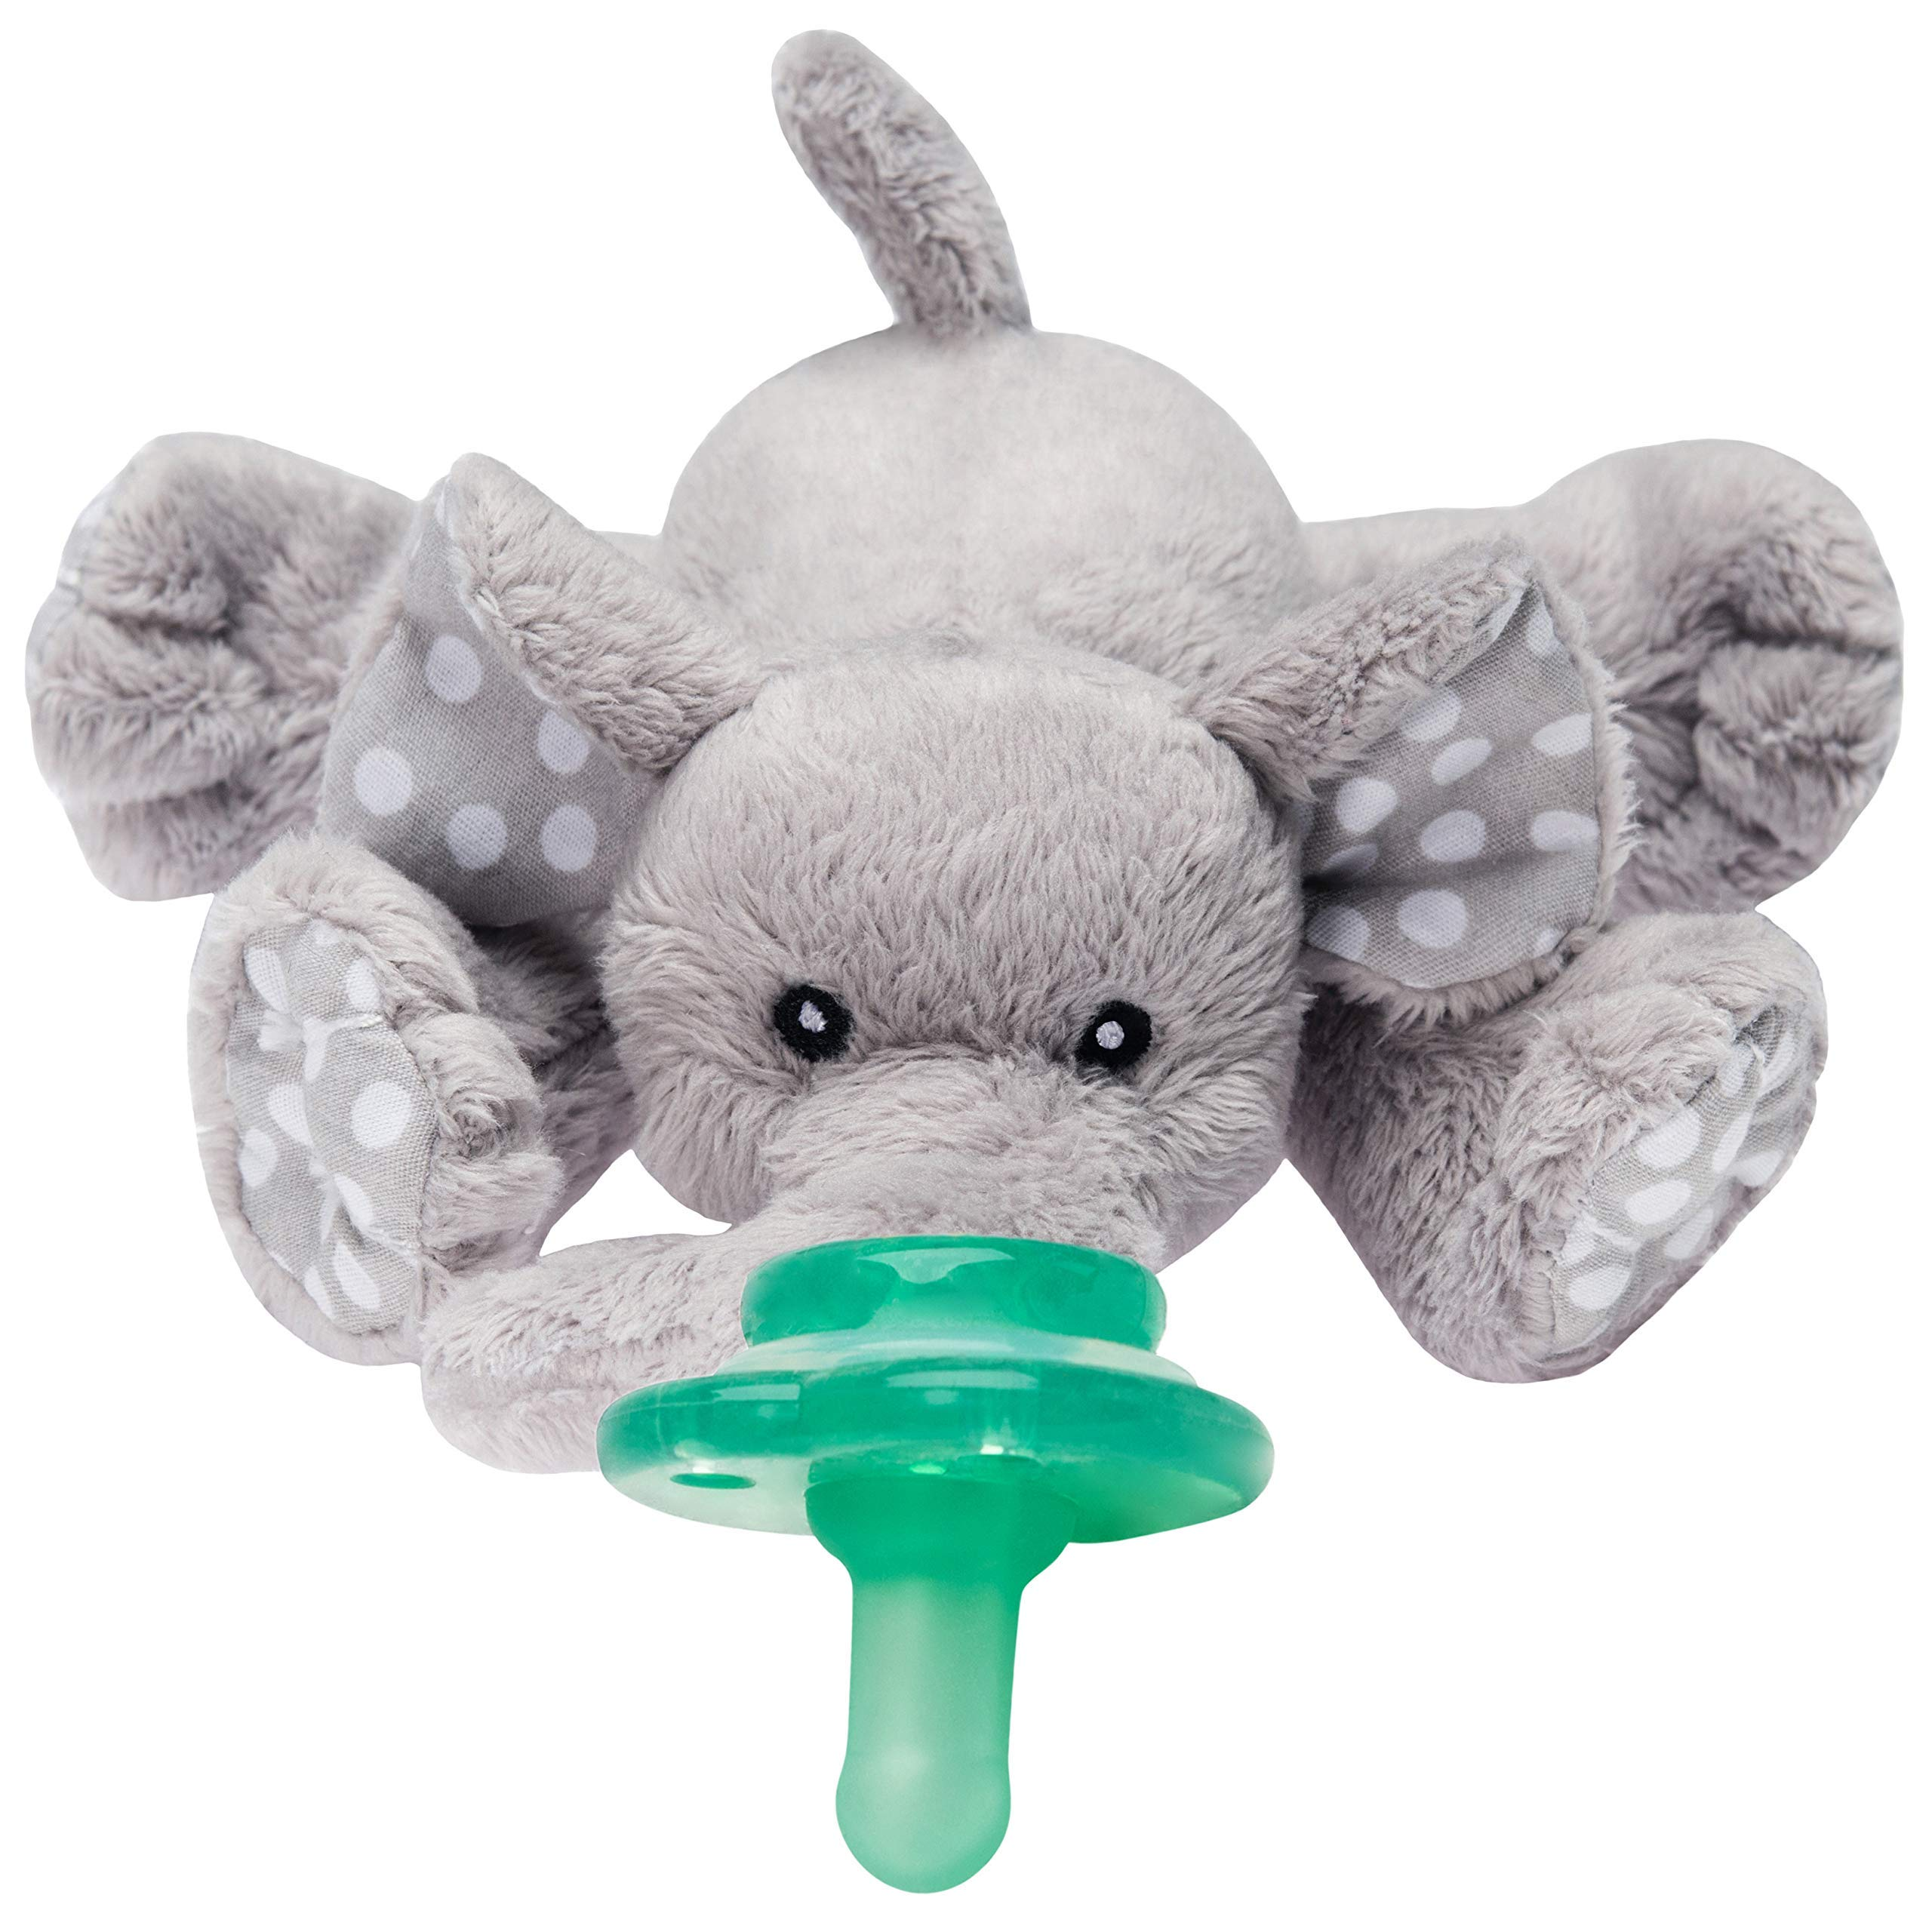 Nookums Paci-Plushies Buddies - Elephant Pacifier Holder - Plush Toy Includes Detachable Pacifier, Use with Multiple Brand Name Pacifiers by Nookums